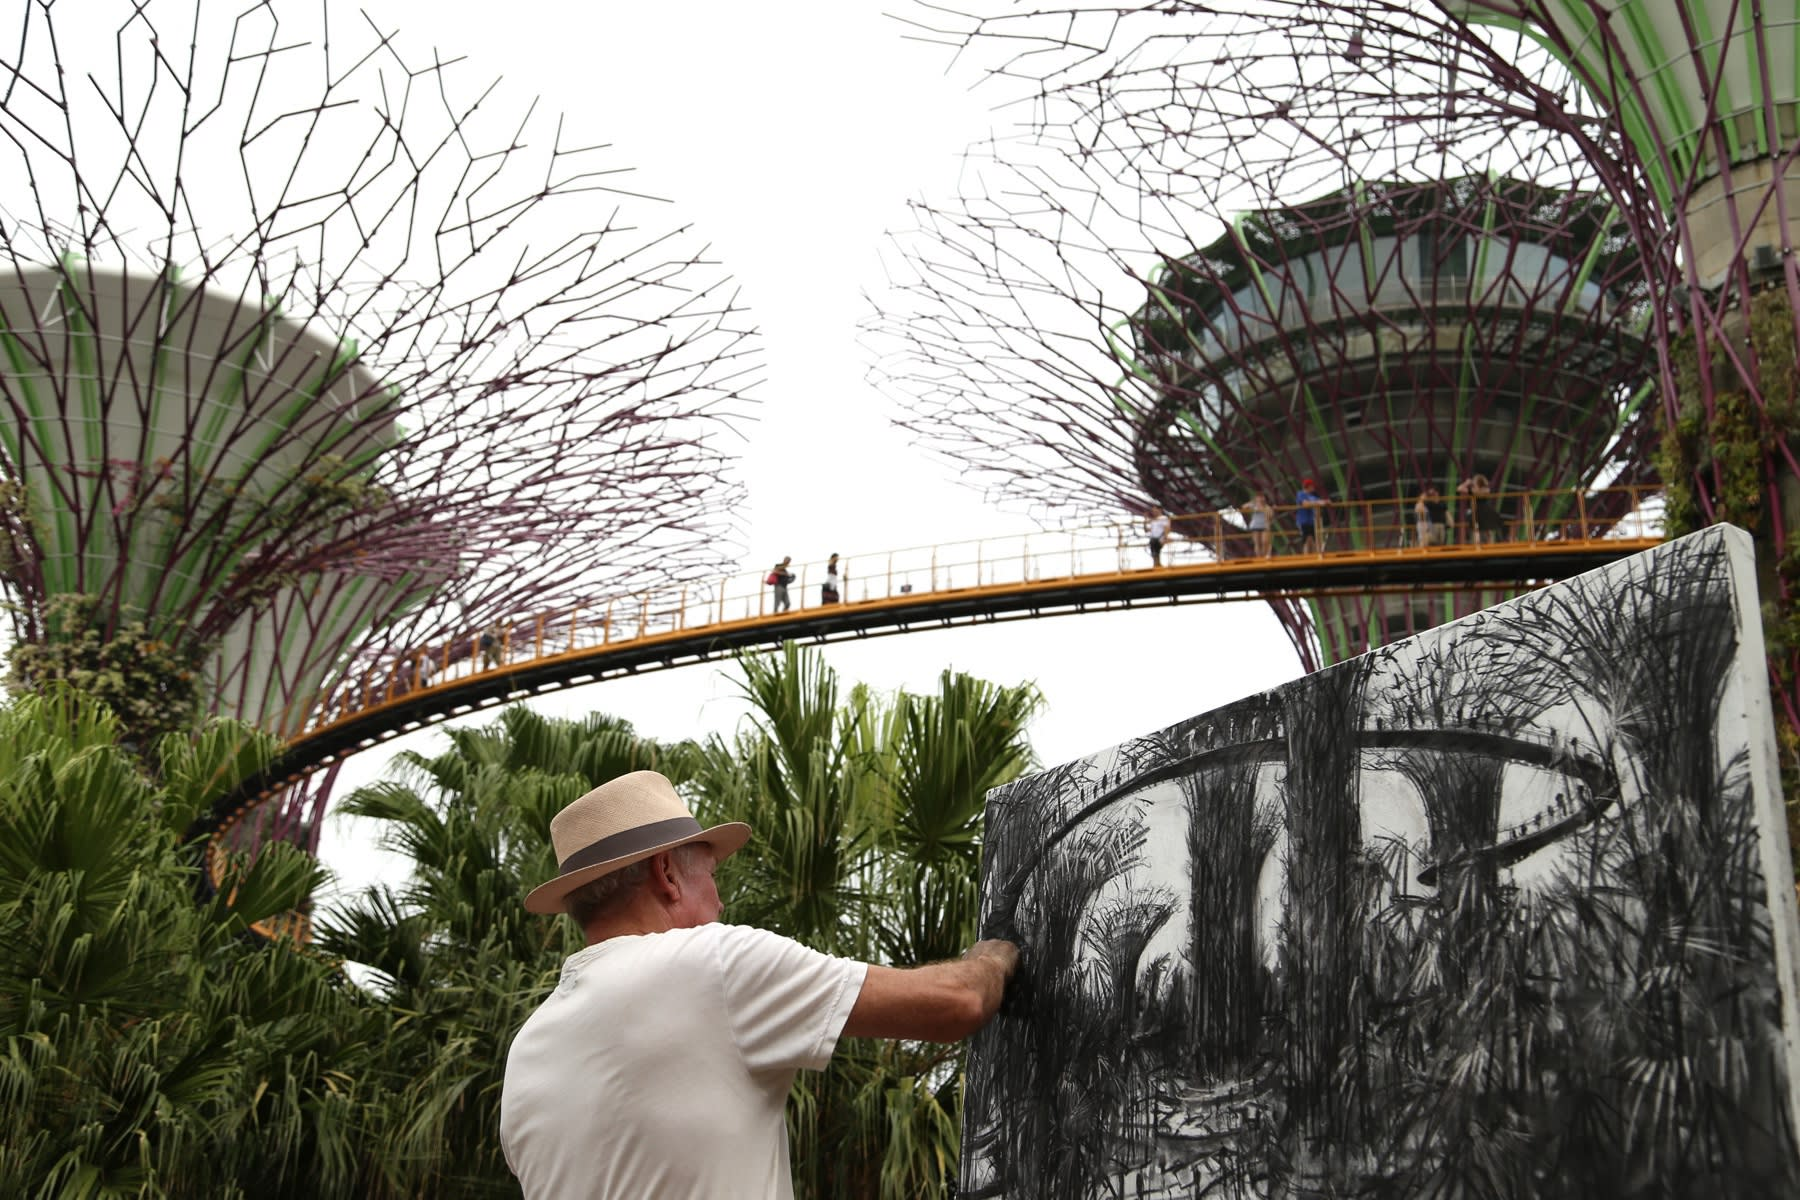 23 SEPTEMBER 2019 GARDENS BY THE BAY, SINGAPORE Supertree Grove photo: Agata Byrne